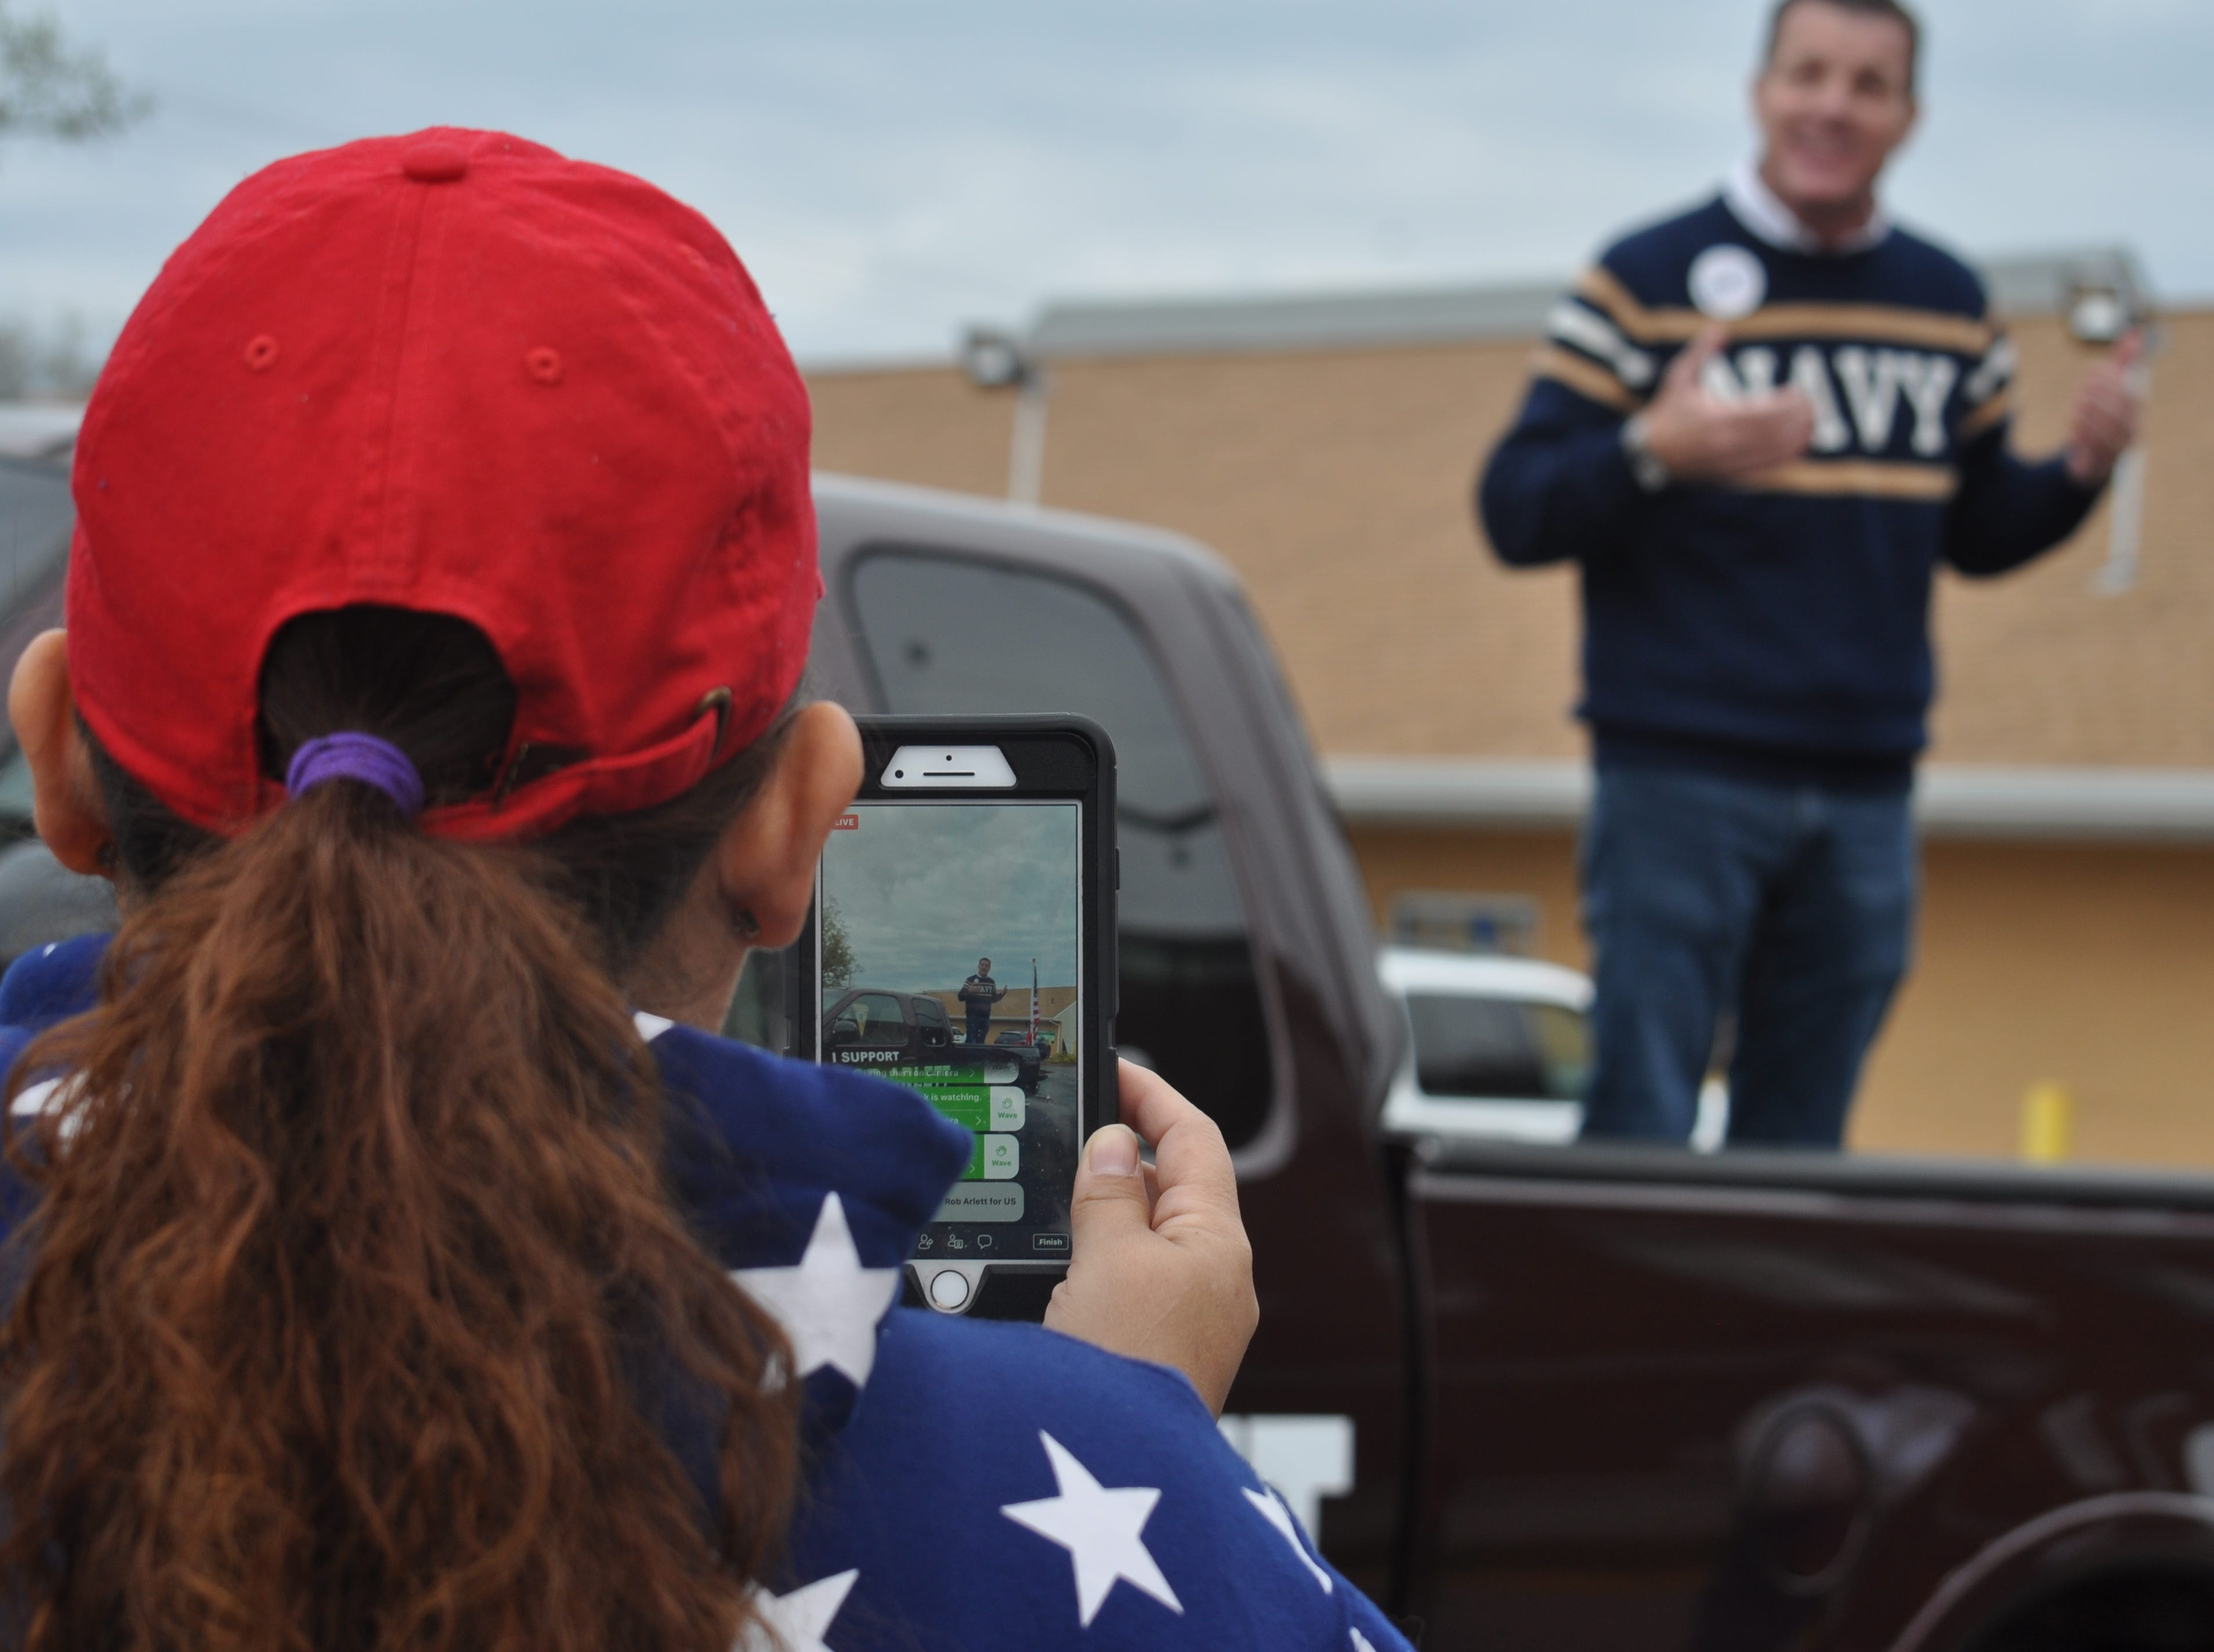 A supporter of U.S. Senate candidate Rob Arlett films his speech for Facebook Live on Oct. 20 in Millsboro.